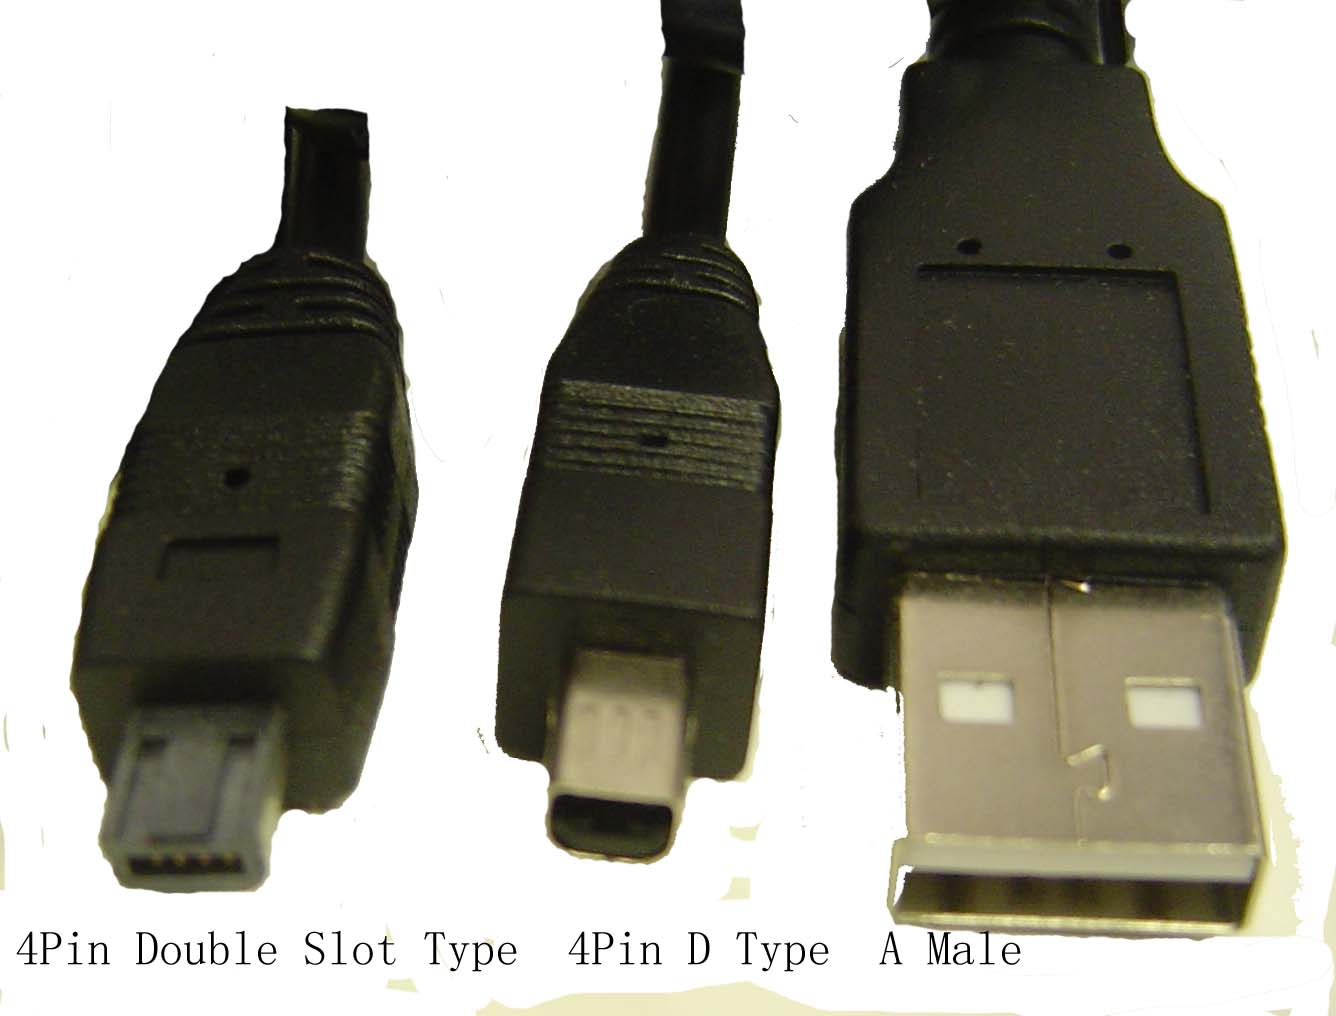 HF-CAB-USB-4P-DS: USB 2.0 A to Mini 4Pin Double Slot Type 5feet